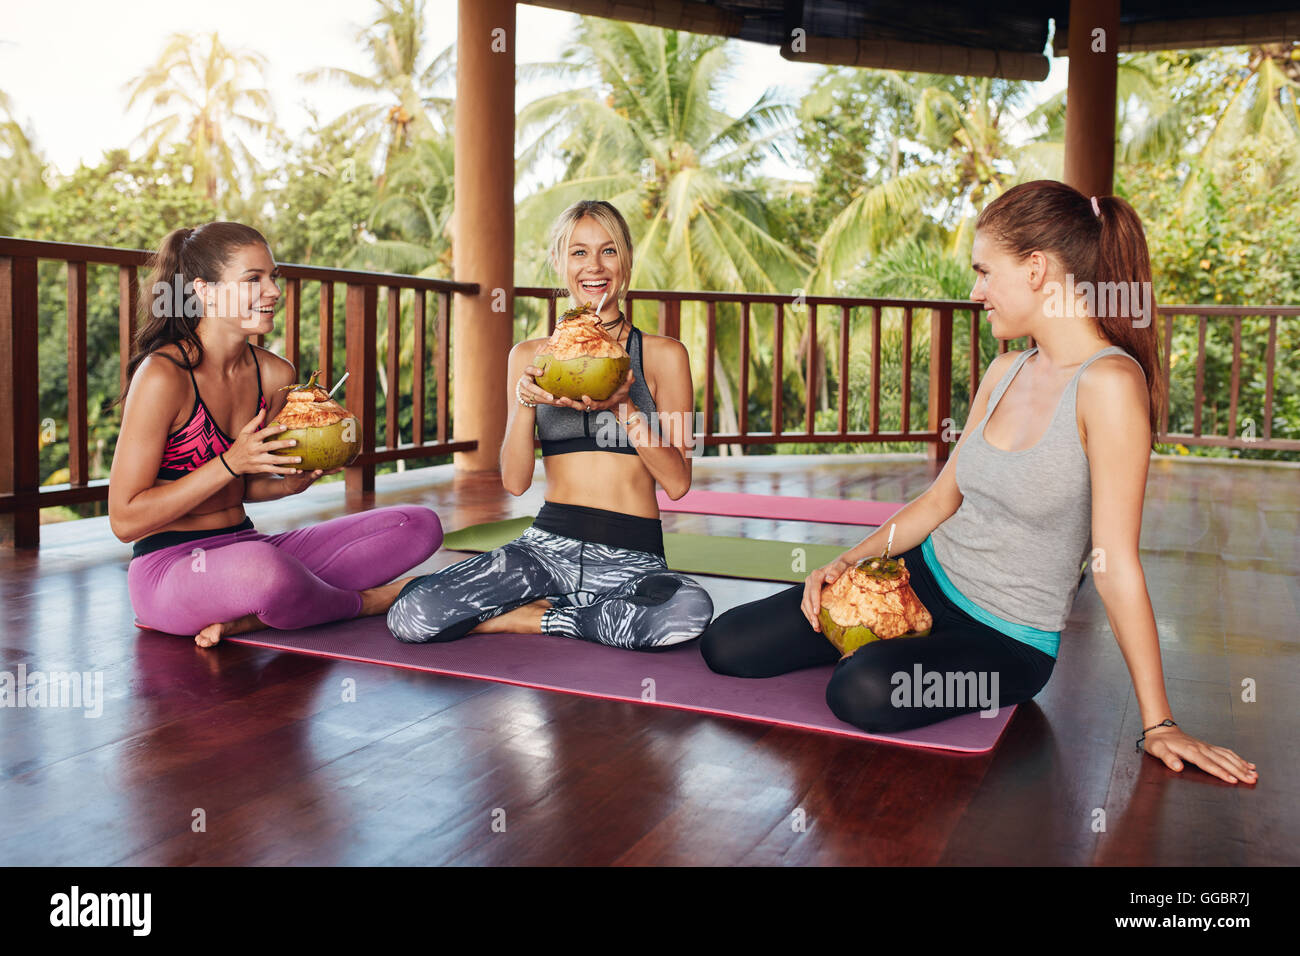 Group of women relaxing with coconut juice after yoga class. Female friends during yoga class break at health club. - Stock Image